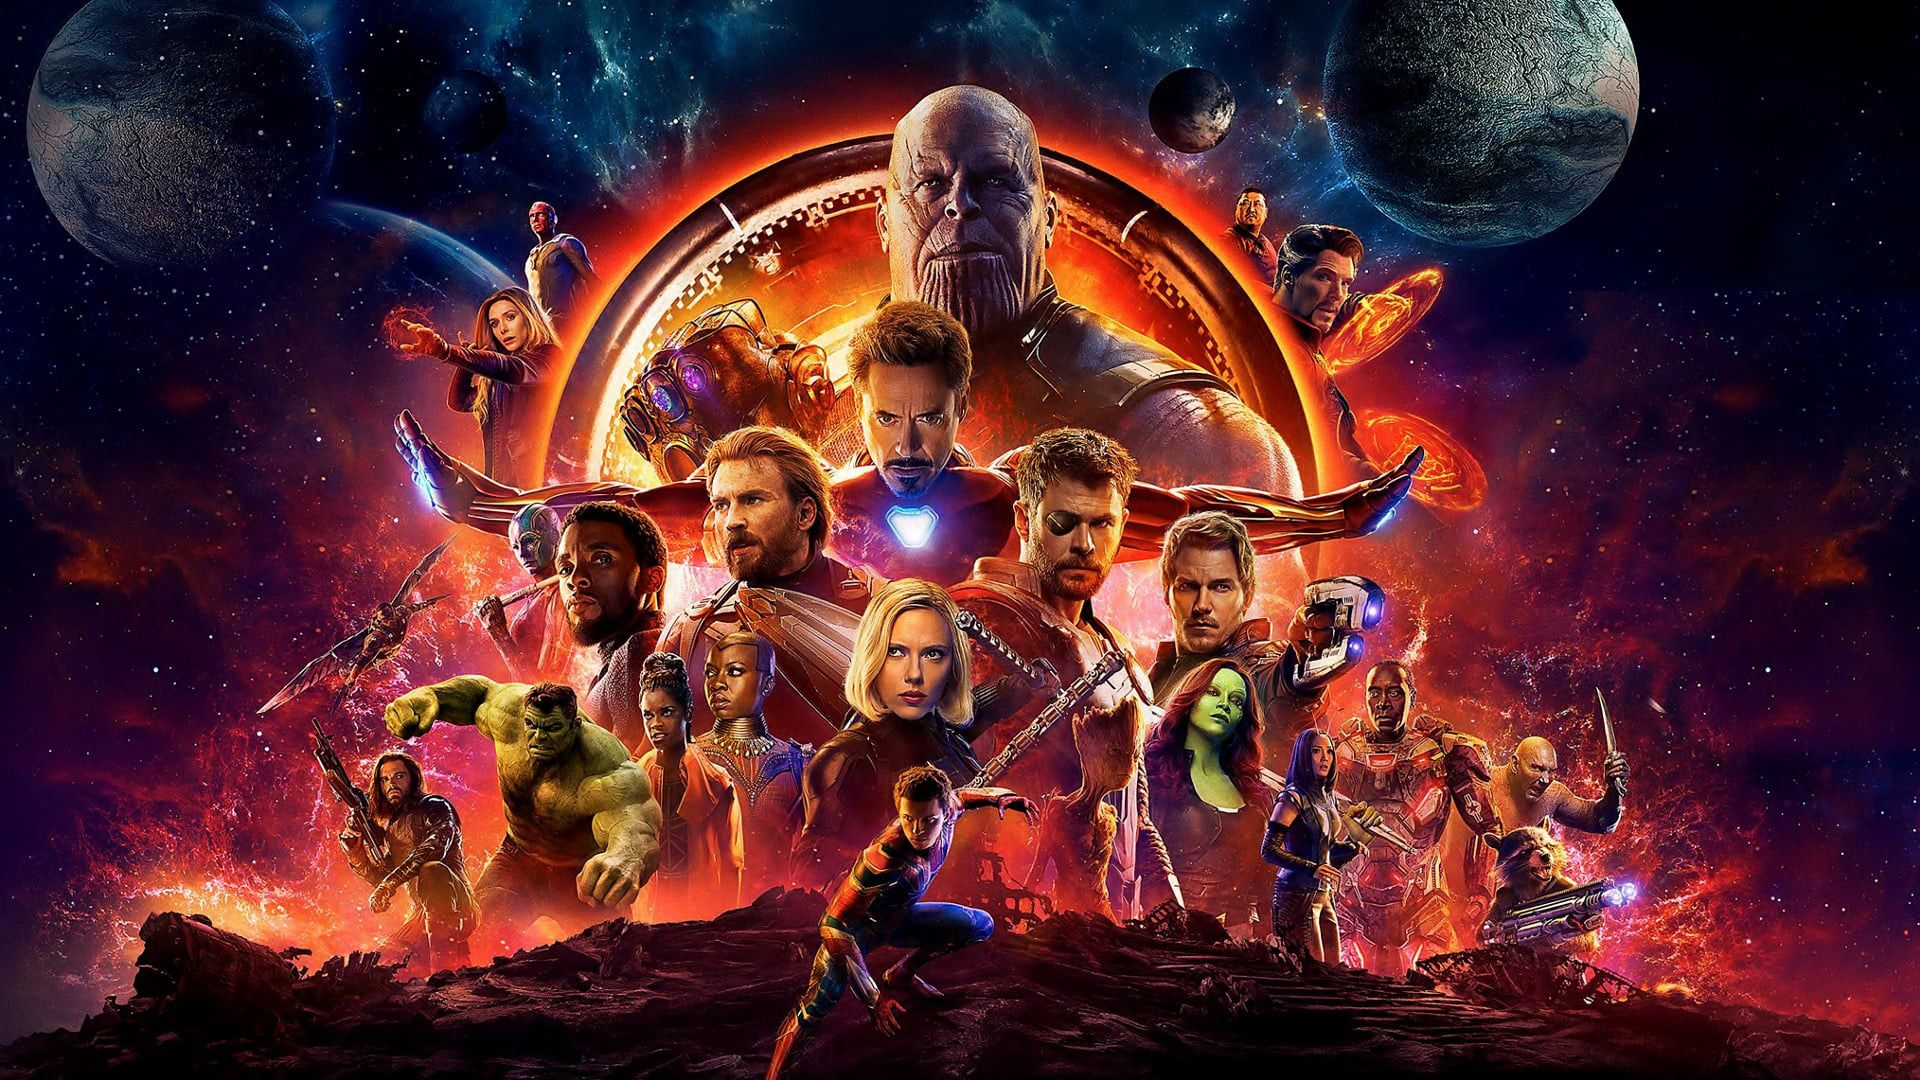 Free Avengers Infinity War Movie Computer Desktop Wallpapers Pictures Images Vingadores Vingadores Personagens Papel De Parede Marvel